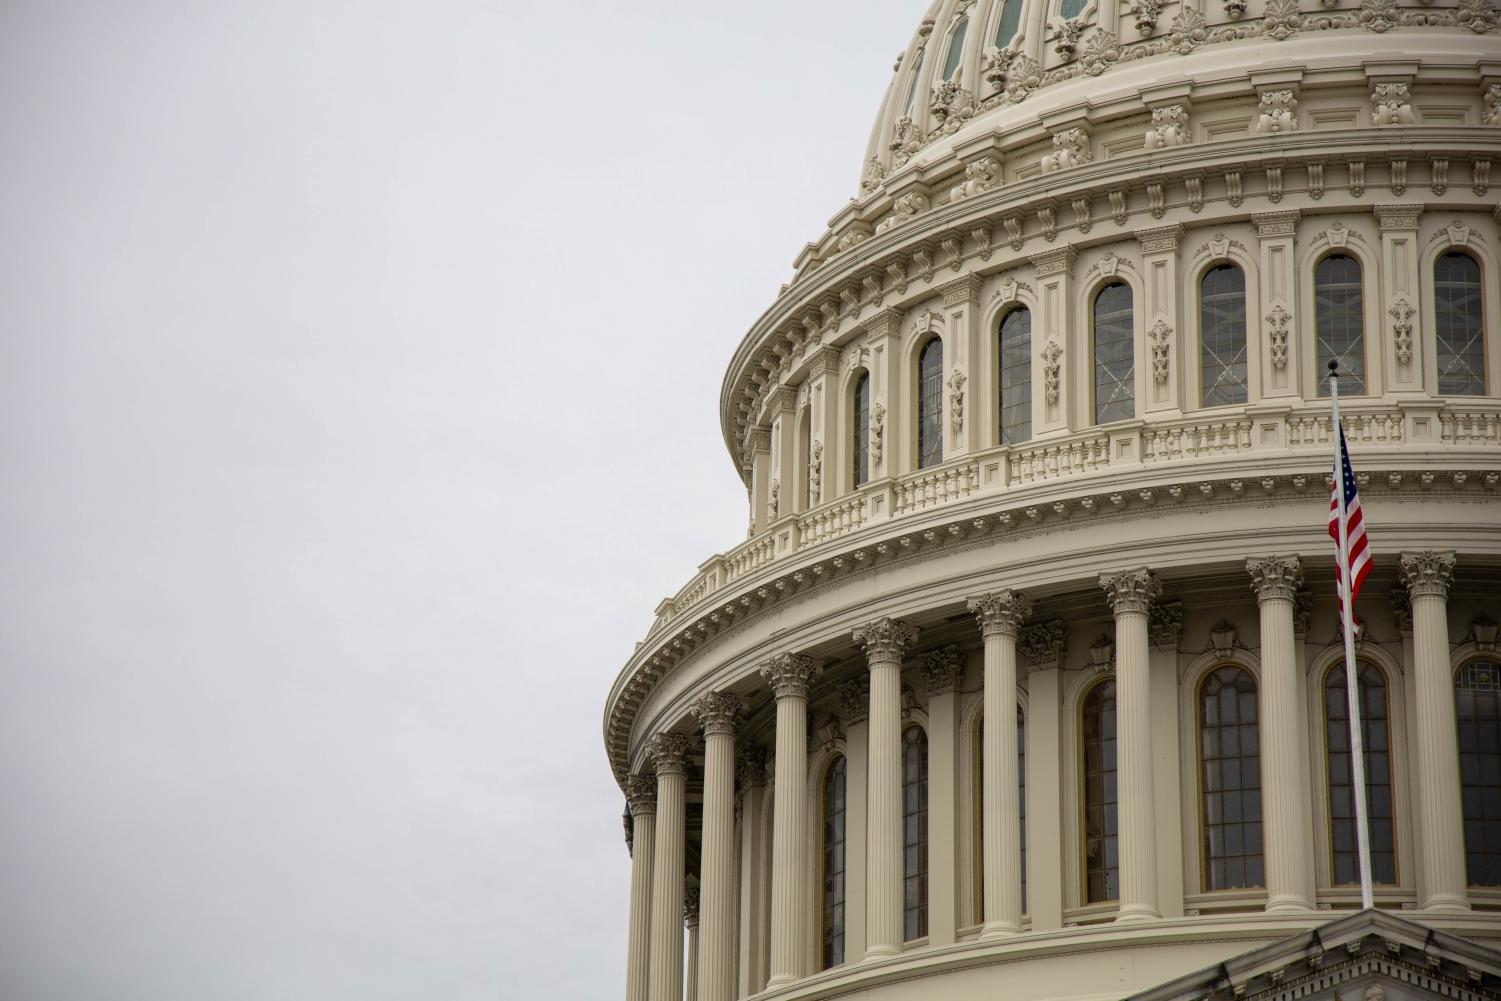 Over the past few months, the Senate Judiciary Committee has held a number of hearings surrounding tech companies and content moderation.